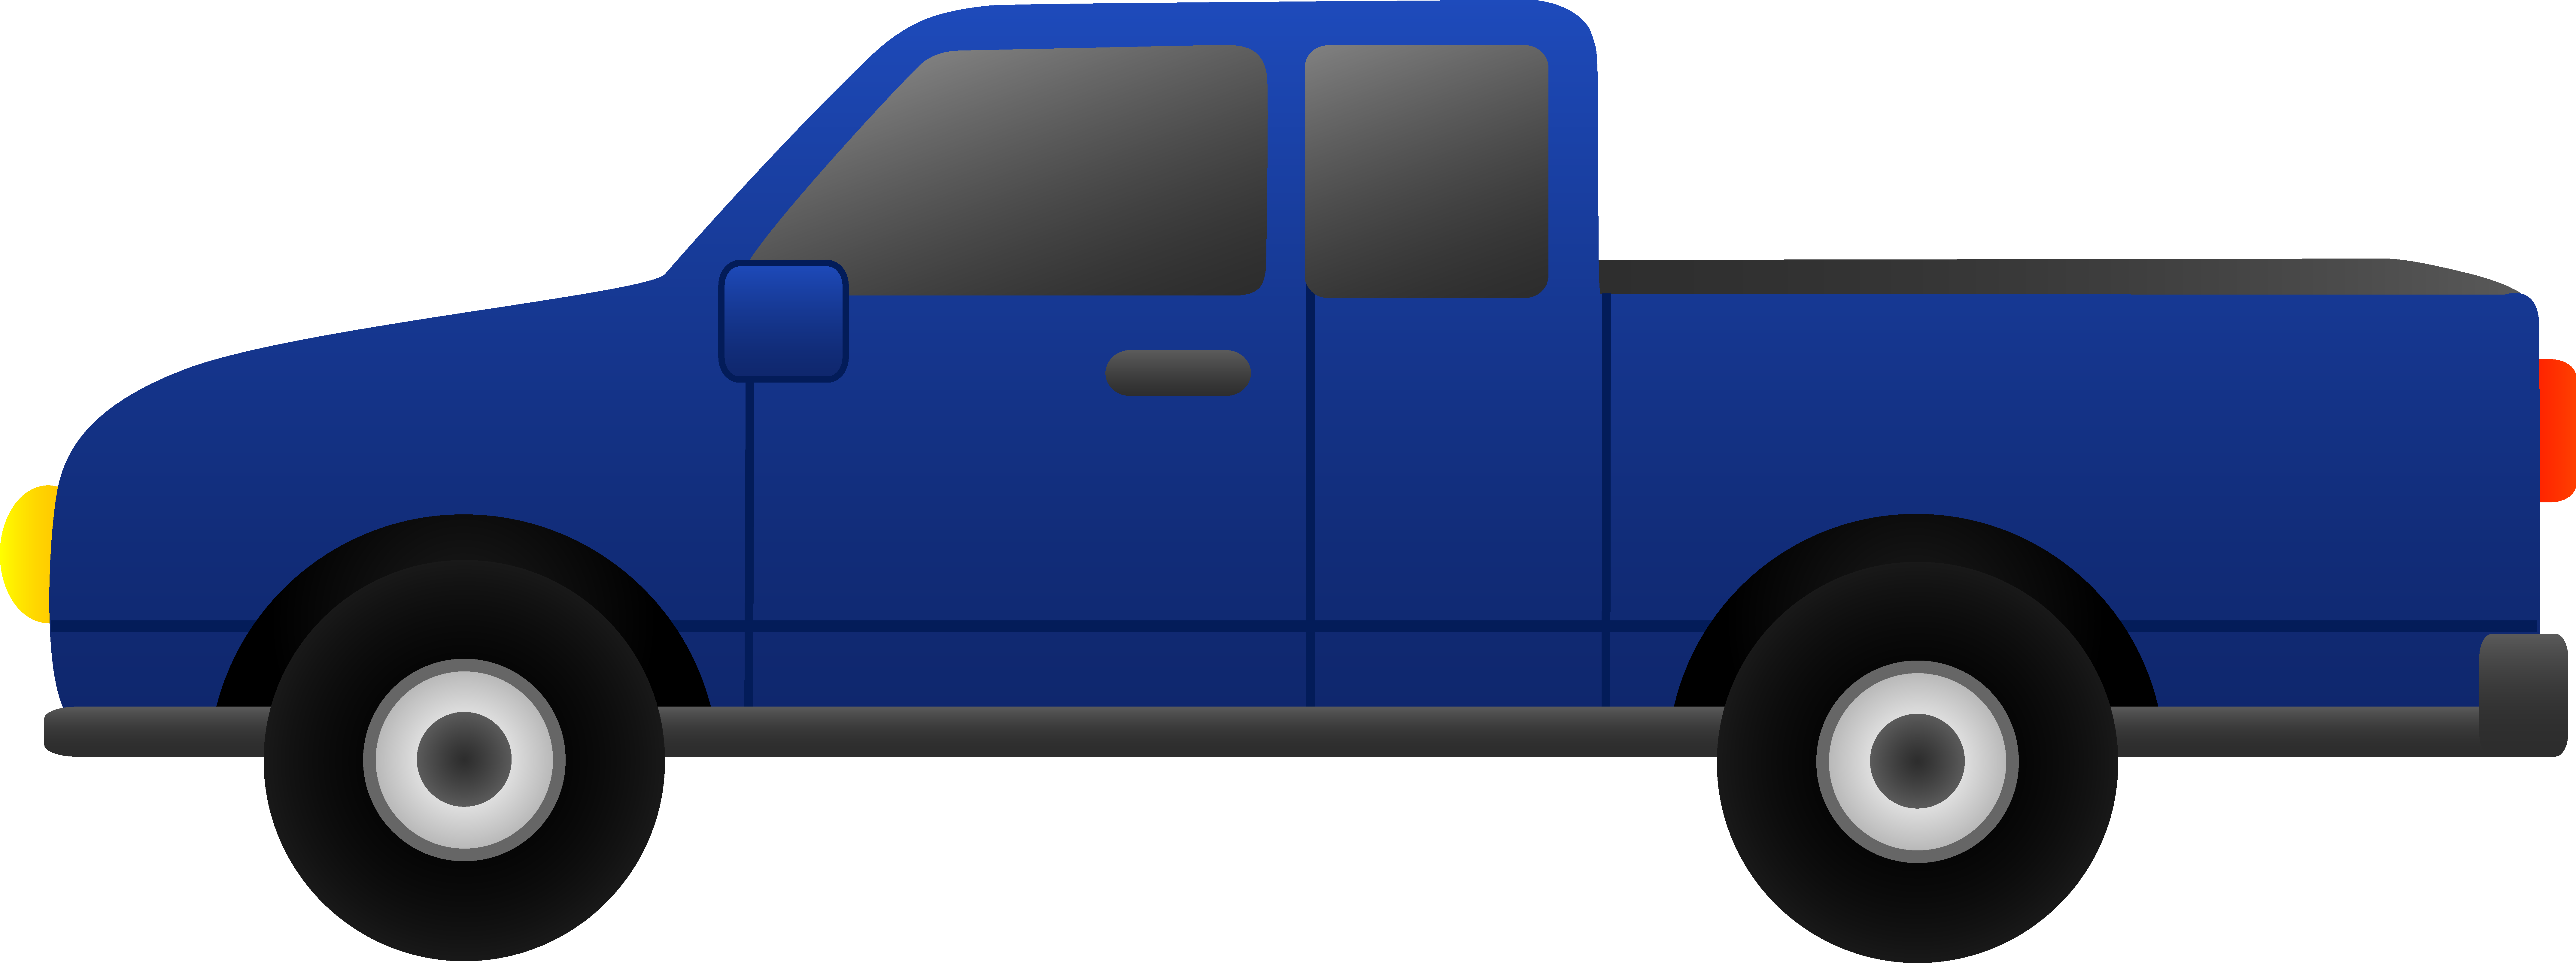 Free truck clipart truck icons truck graphic clipart clipartcow.